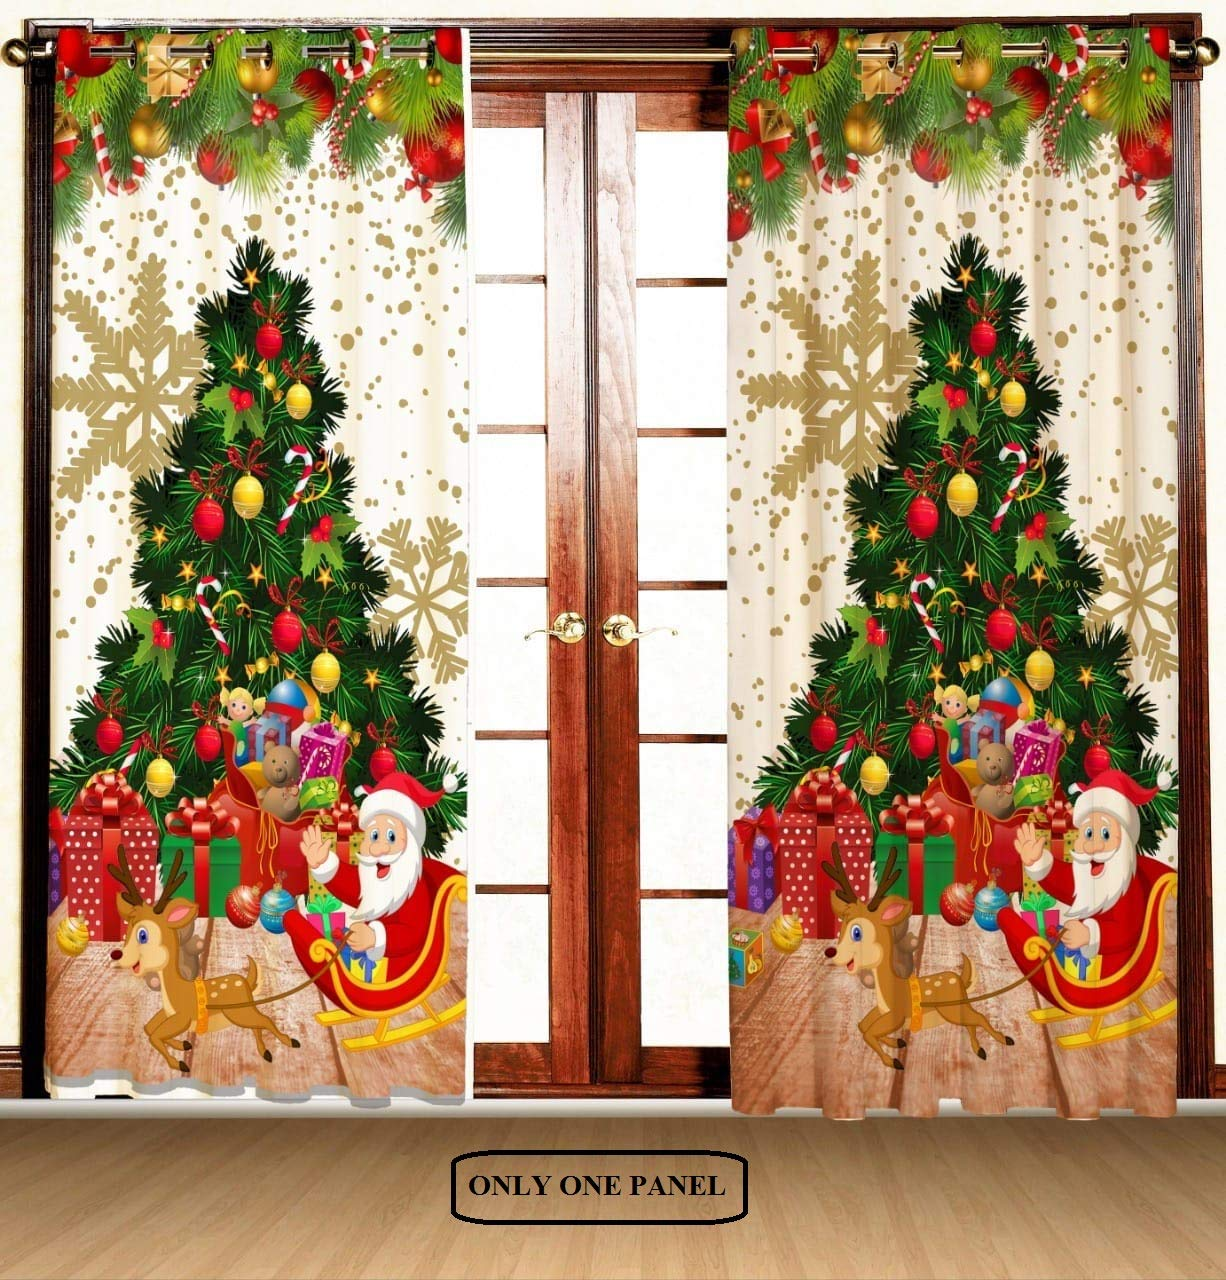 Amazon Com Ekavya Christmas Curtain Red Green Tree Decorations By Xmas Inspired Theme Fir Twigs And Vibrant Balls Santa Claus With Gifts Living Room Bedroom 1 Curtain Only 48 W X 84 L